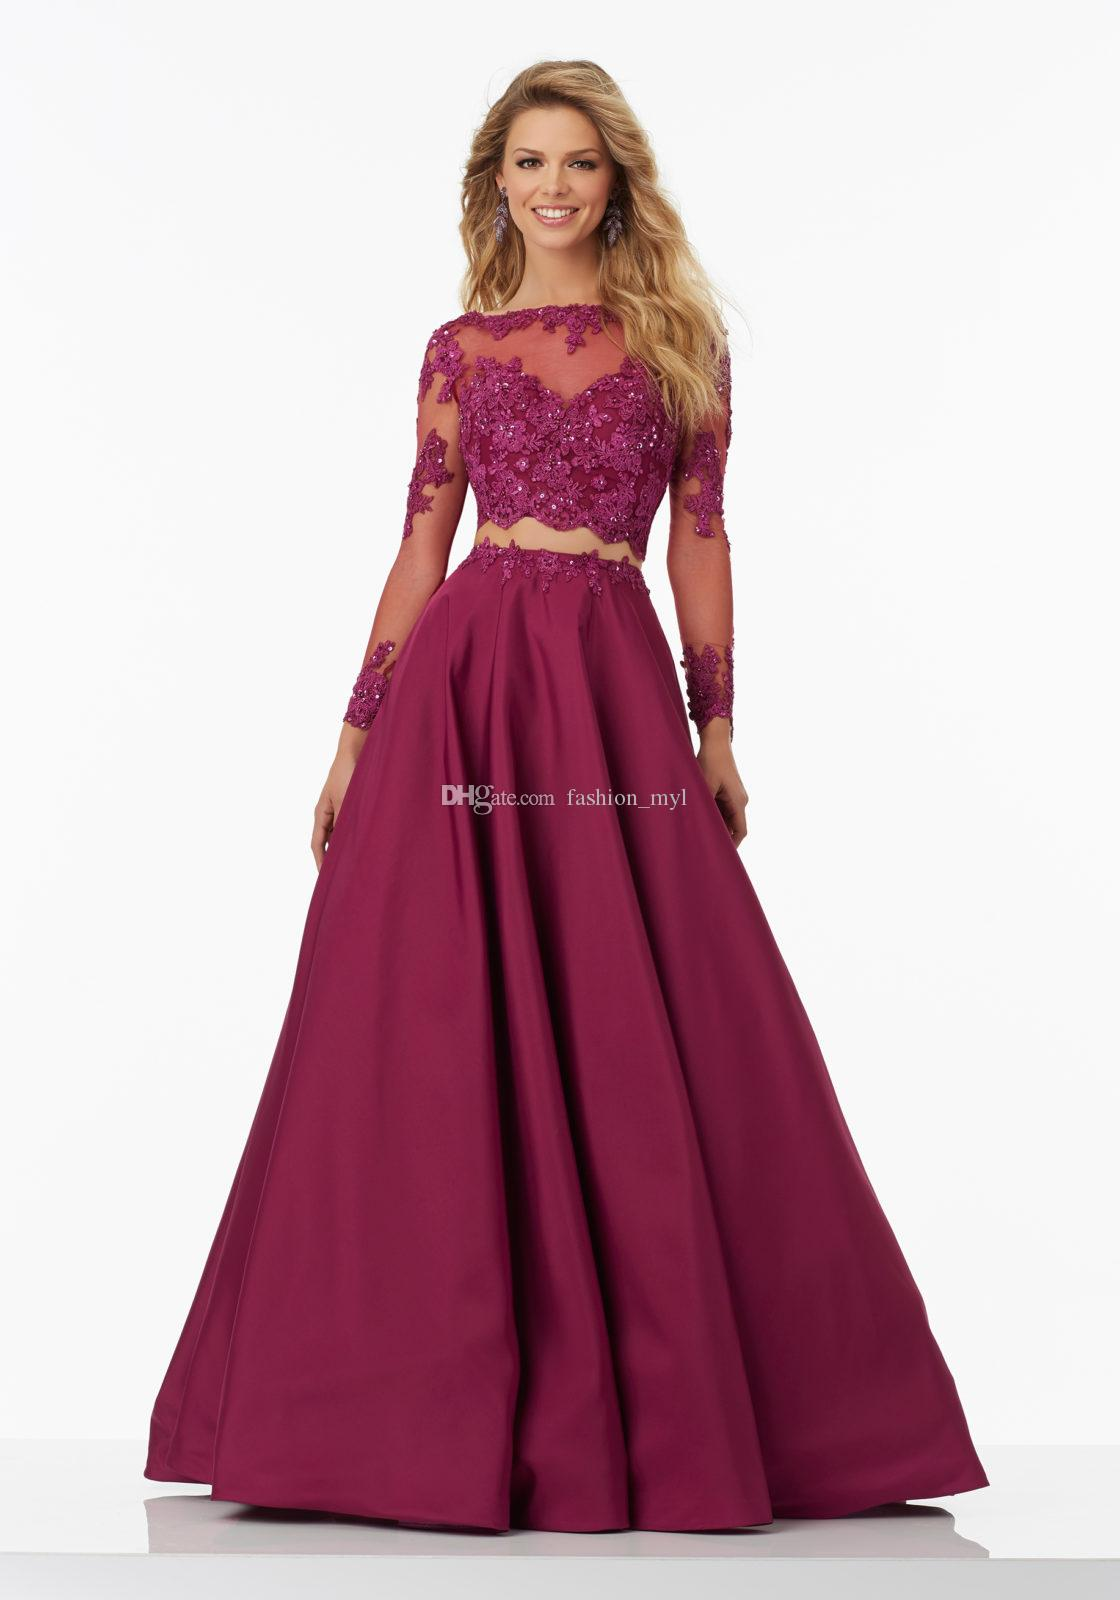 New Two Pieces Burgundy Lace Evening Dresses With Beads Long ...